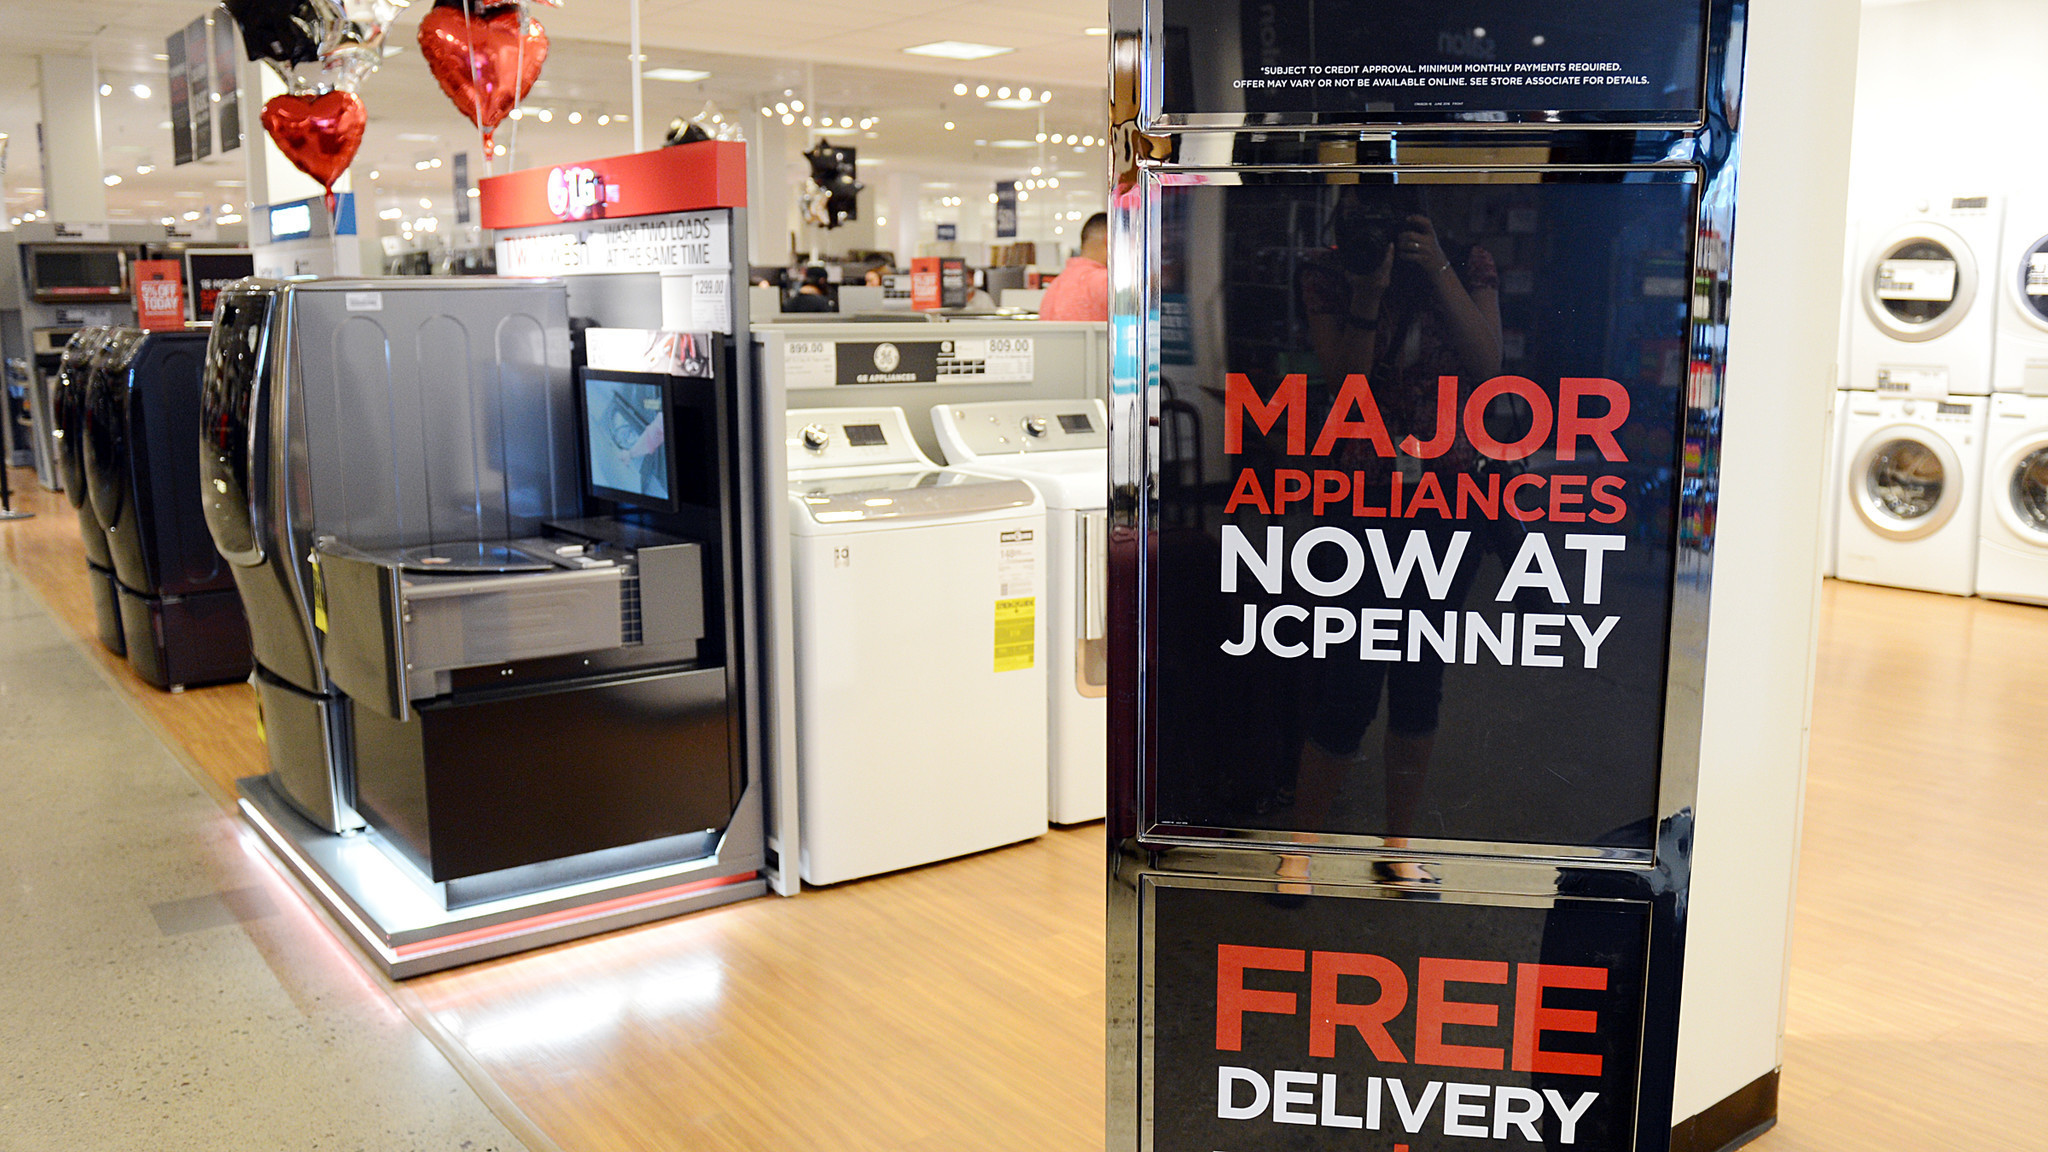 Jcpenney In Abingdon Adds Major Appliance Showroom